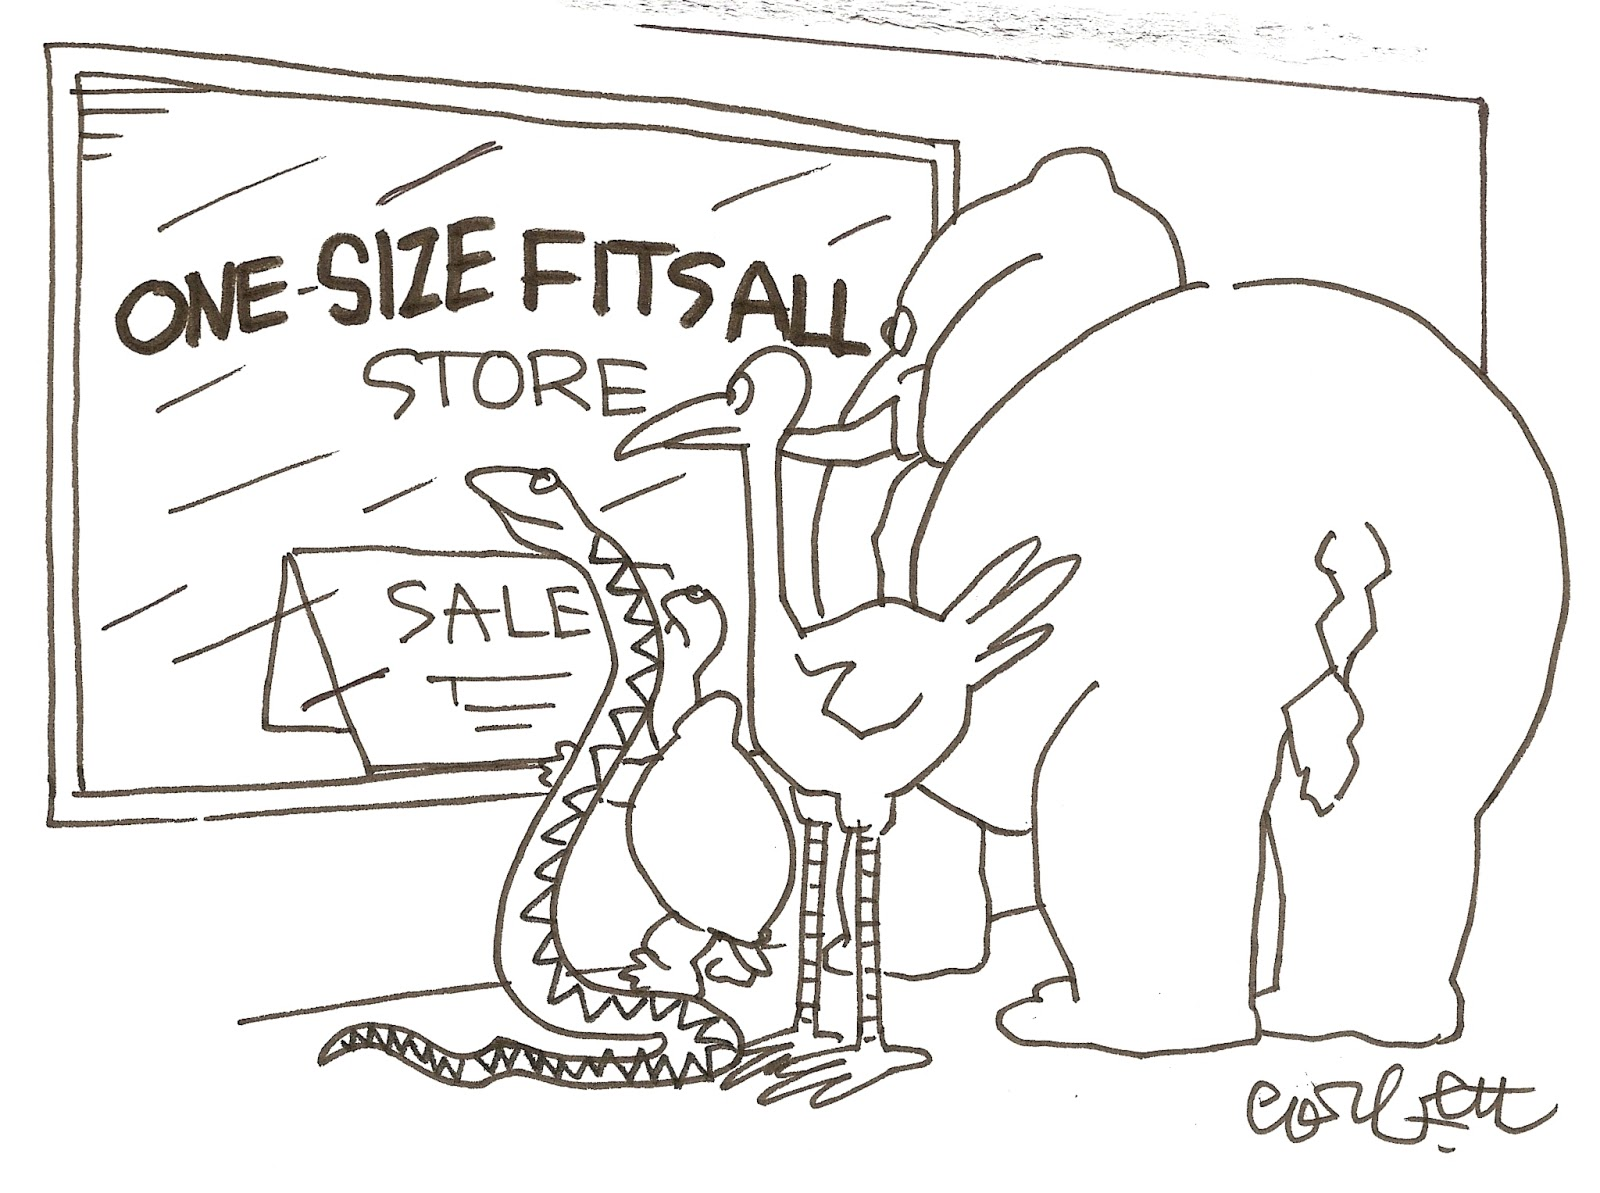 Customer Service: One Size Does NOT Fit All